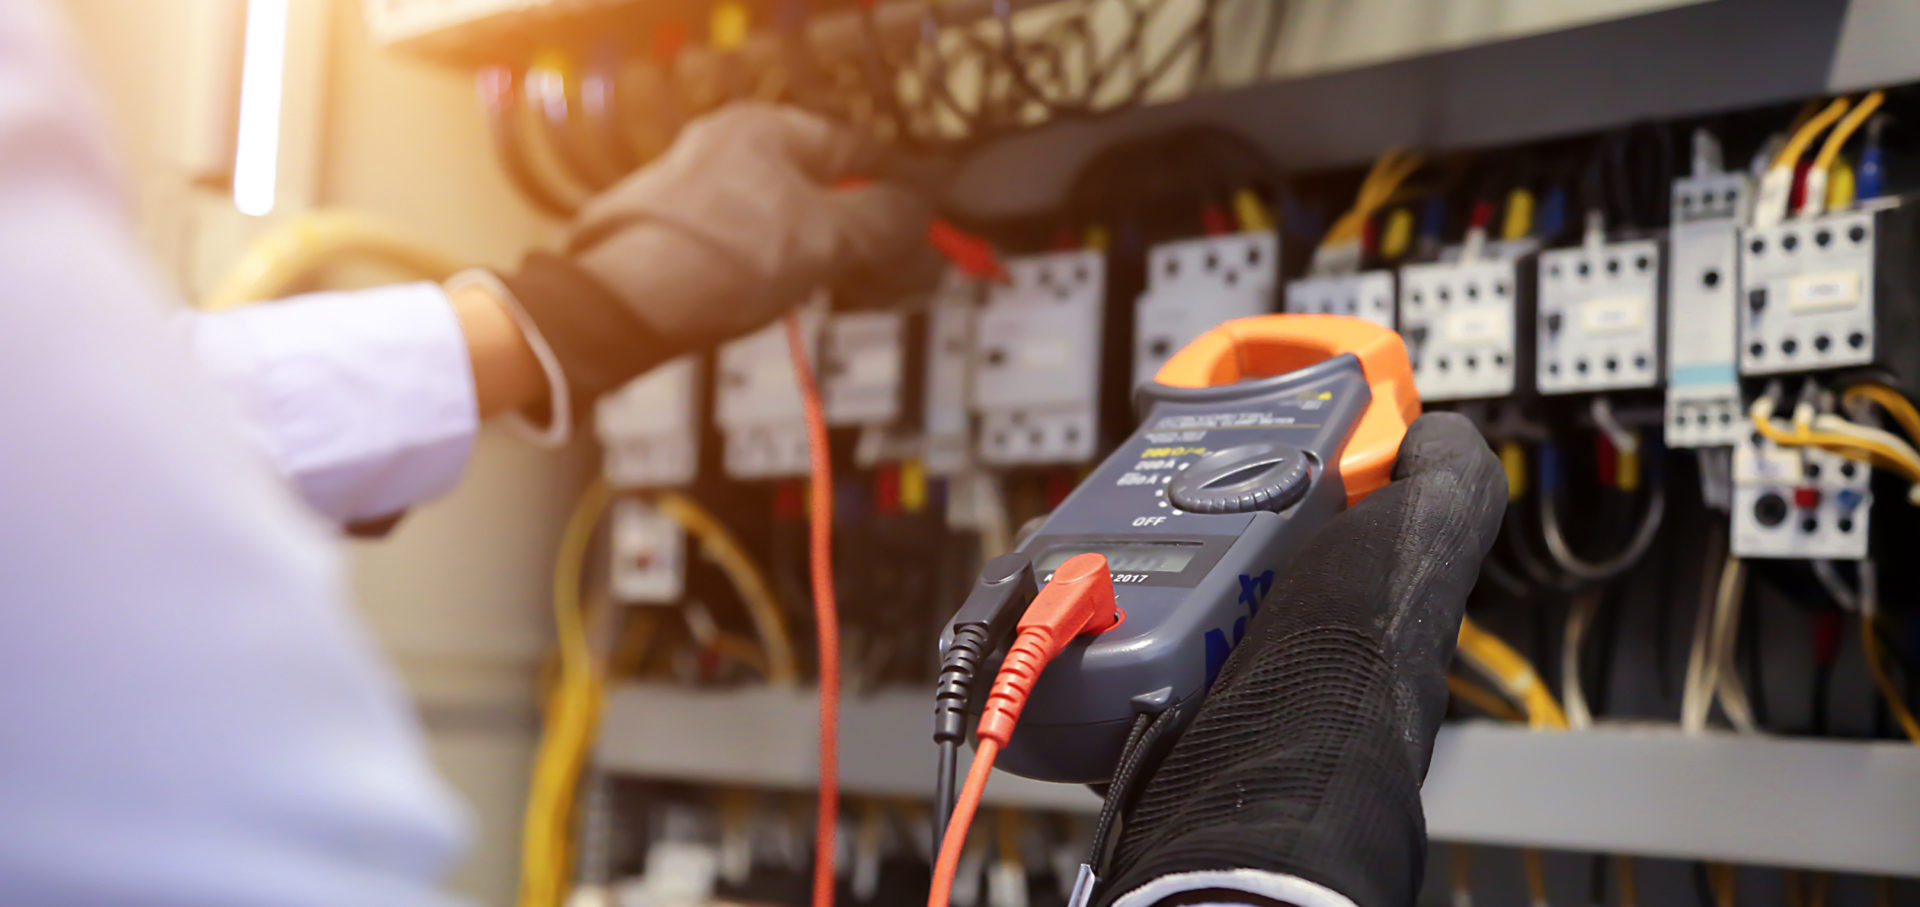 Electrician checking voltage